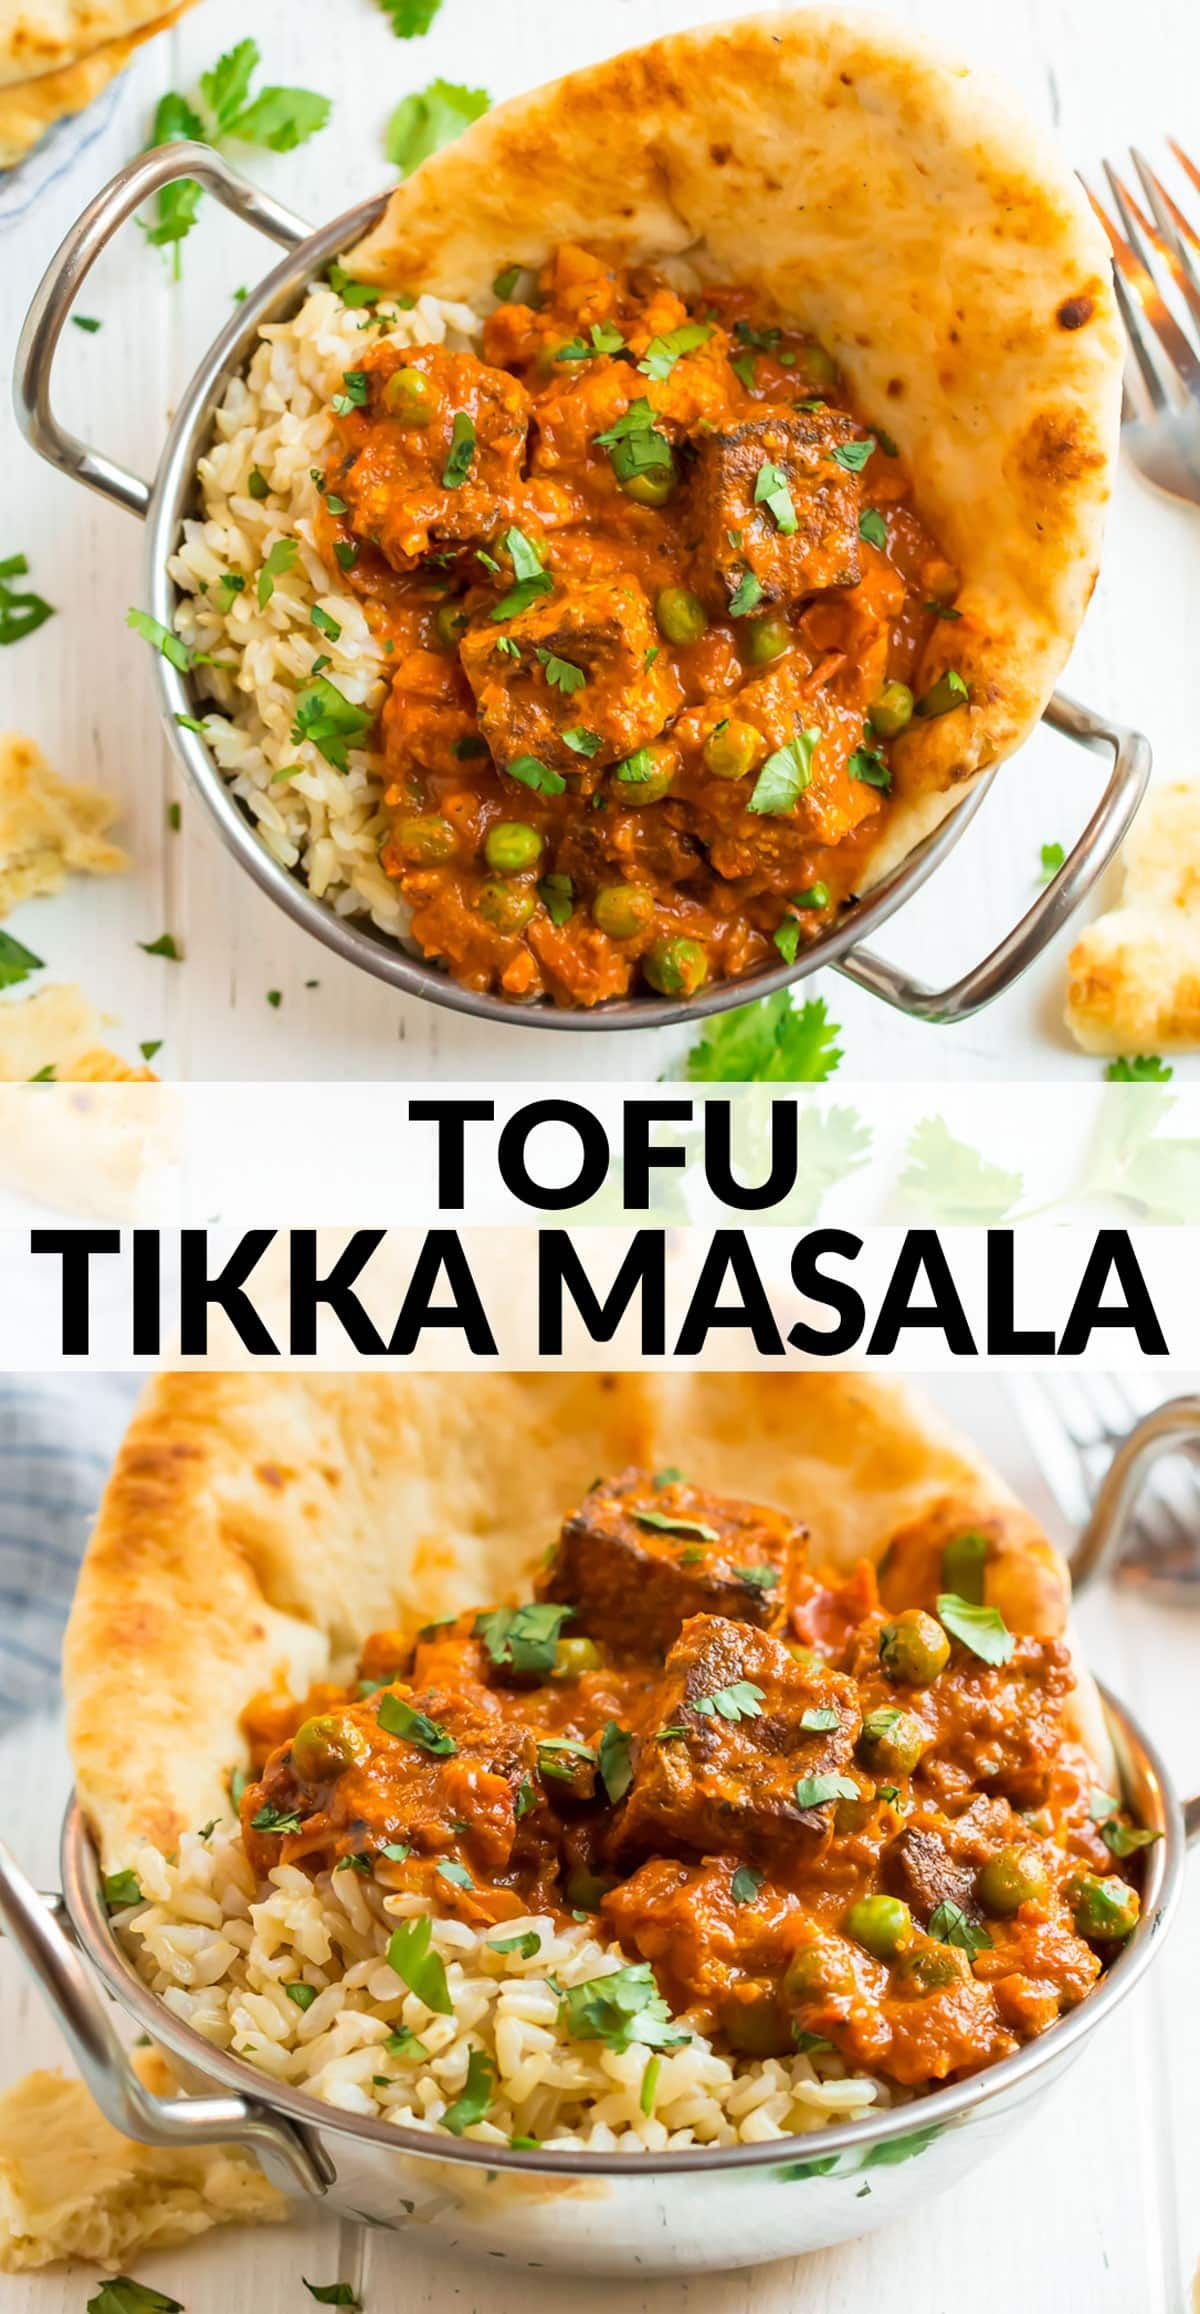 This Healthy Tofu Tikka Masala Features Tandoori Style Tofu In A